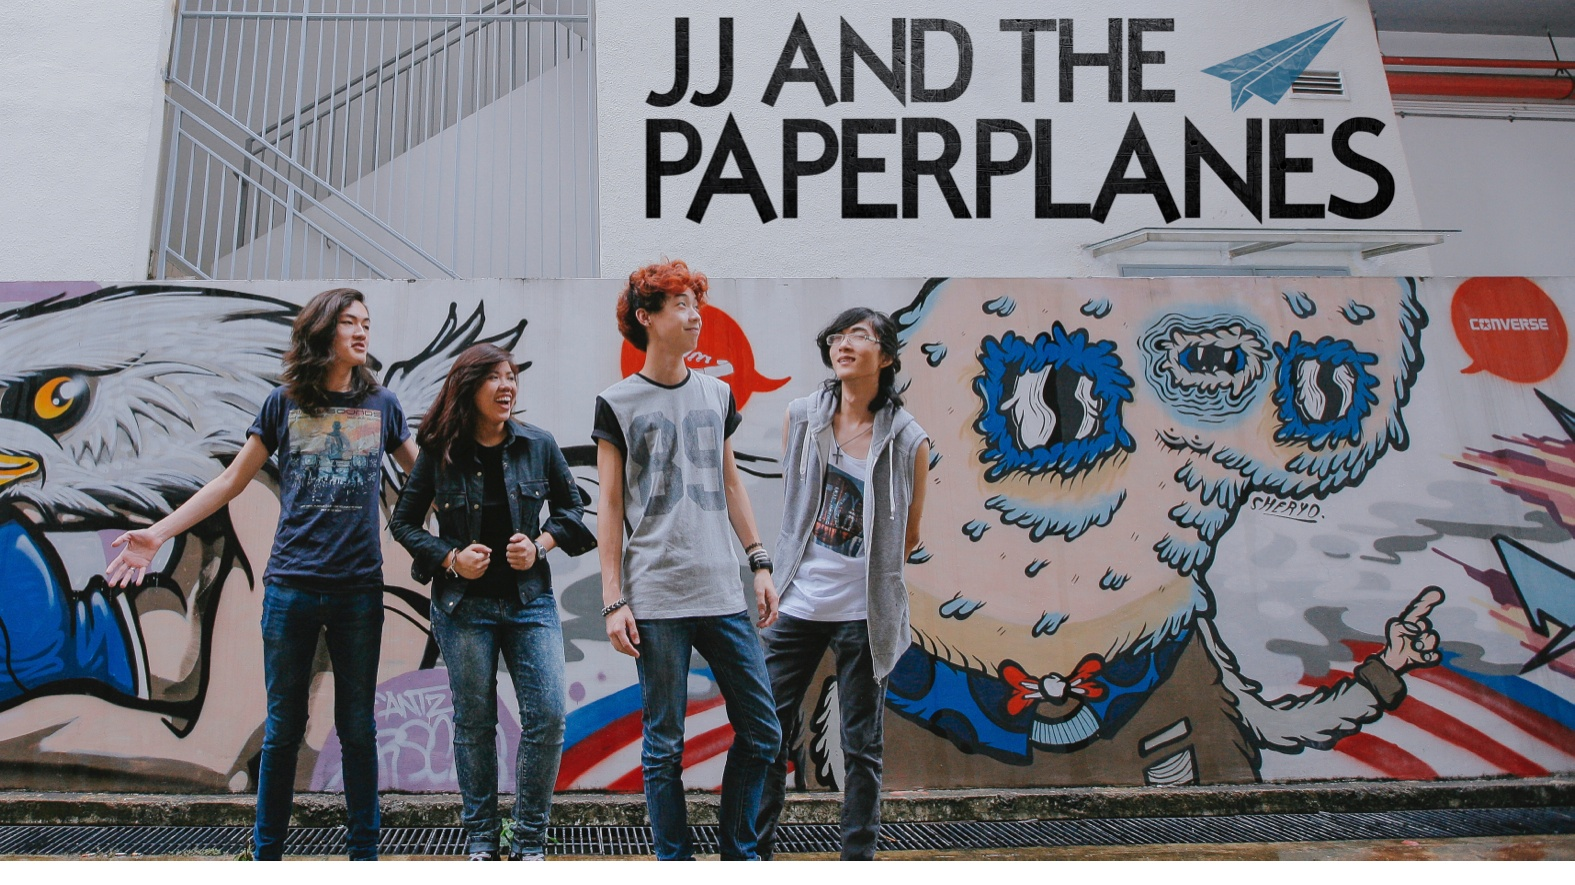 JJ And The Paperplanes A Simple Hello Debut Single Launch Tour